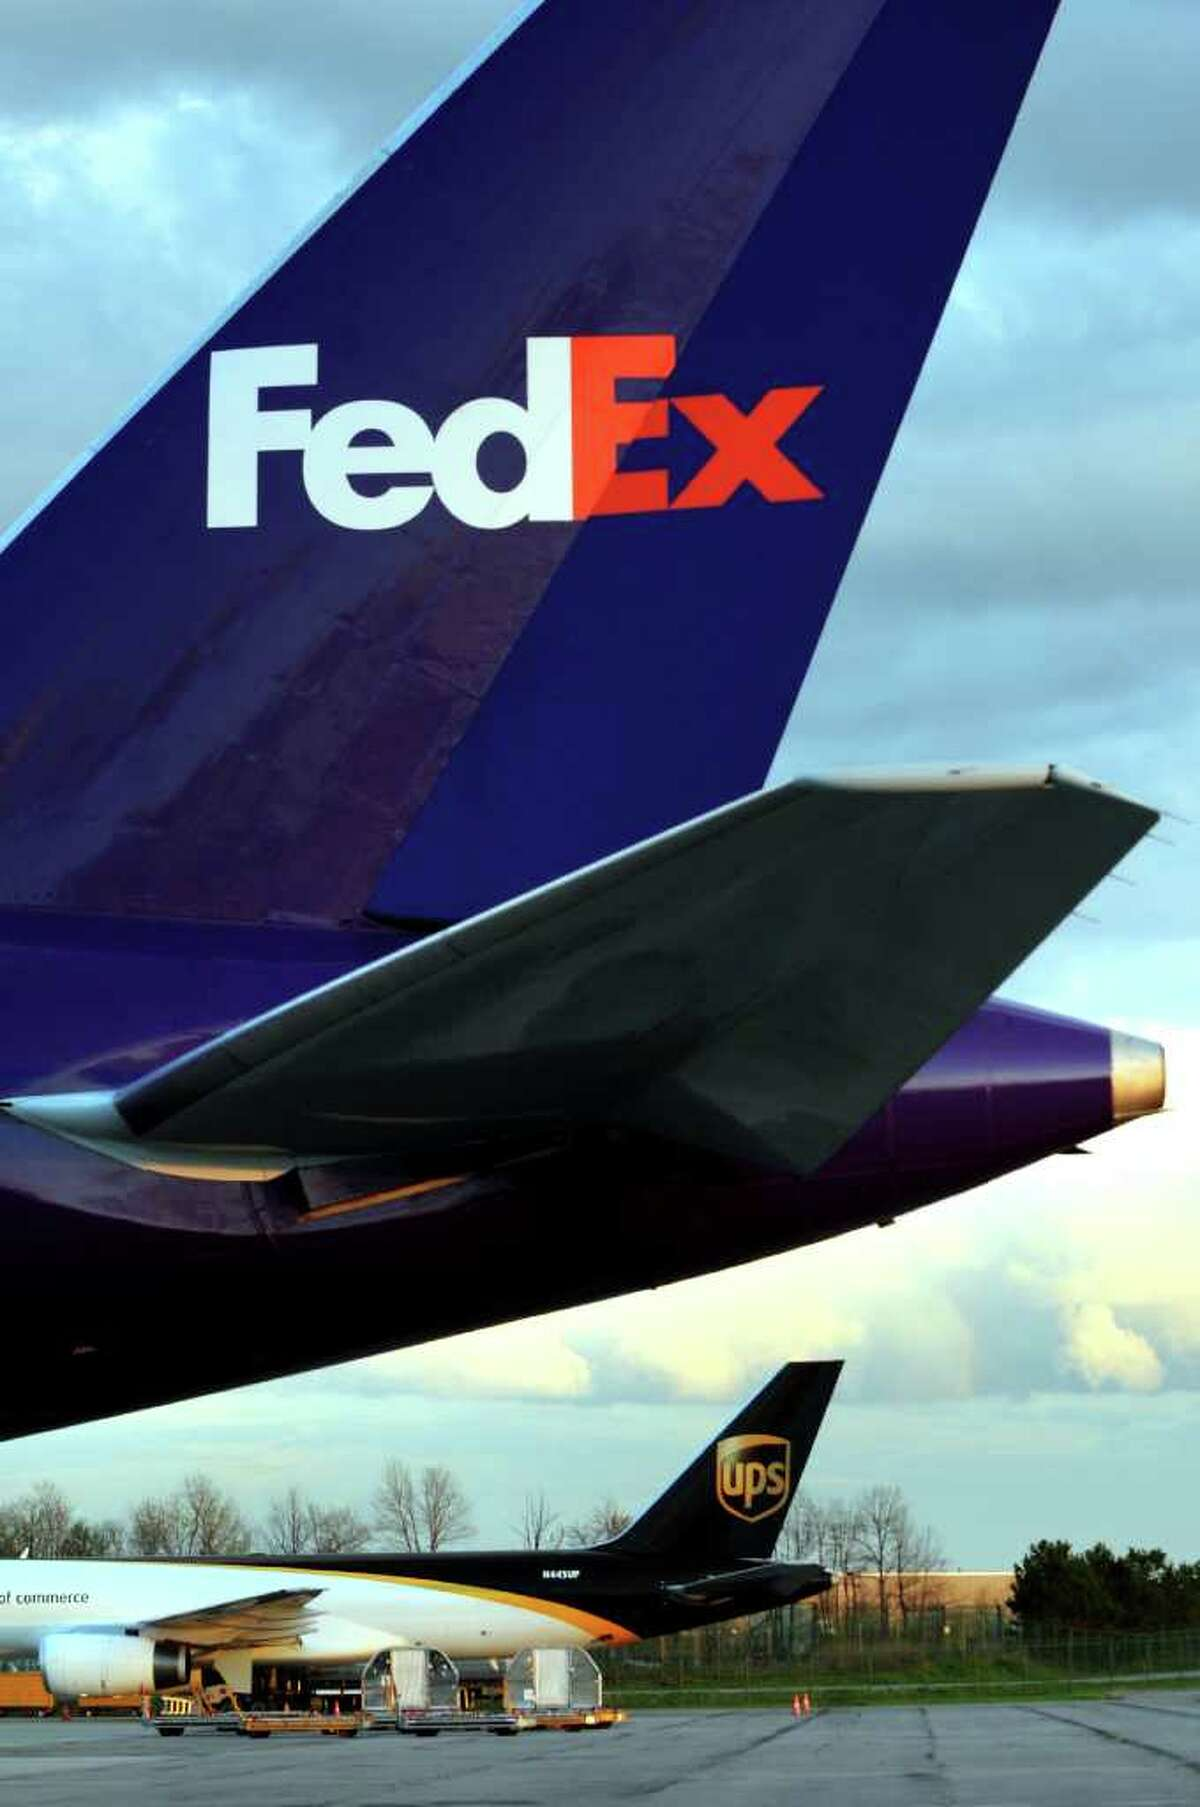 FedEx and UPS cargo planes at the Air Cargo Facility on Thursday, April 28, 2011, at the Albany International Airport in Colonie, N.Y. (Cindy Schultz / Times Union)